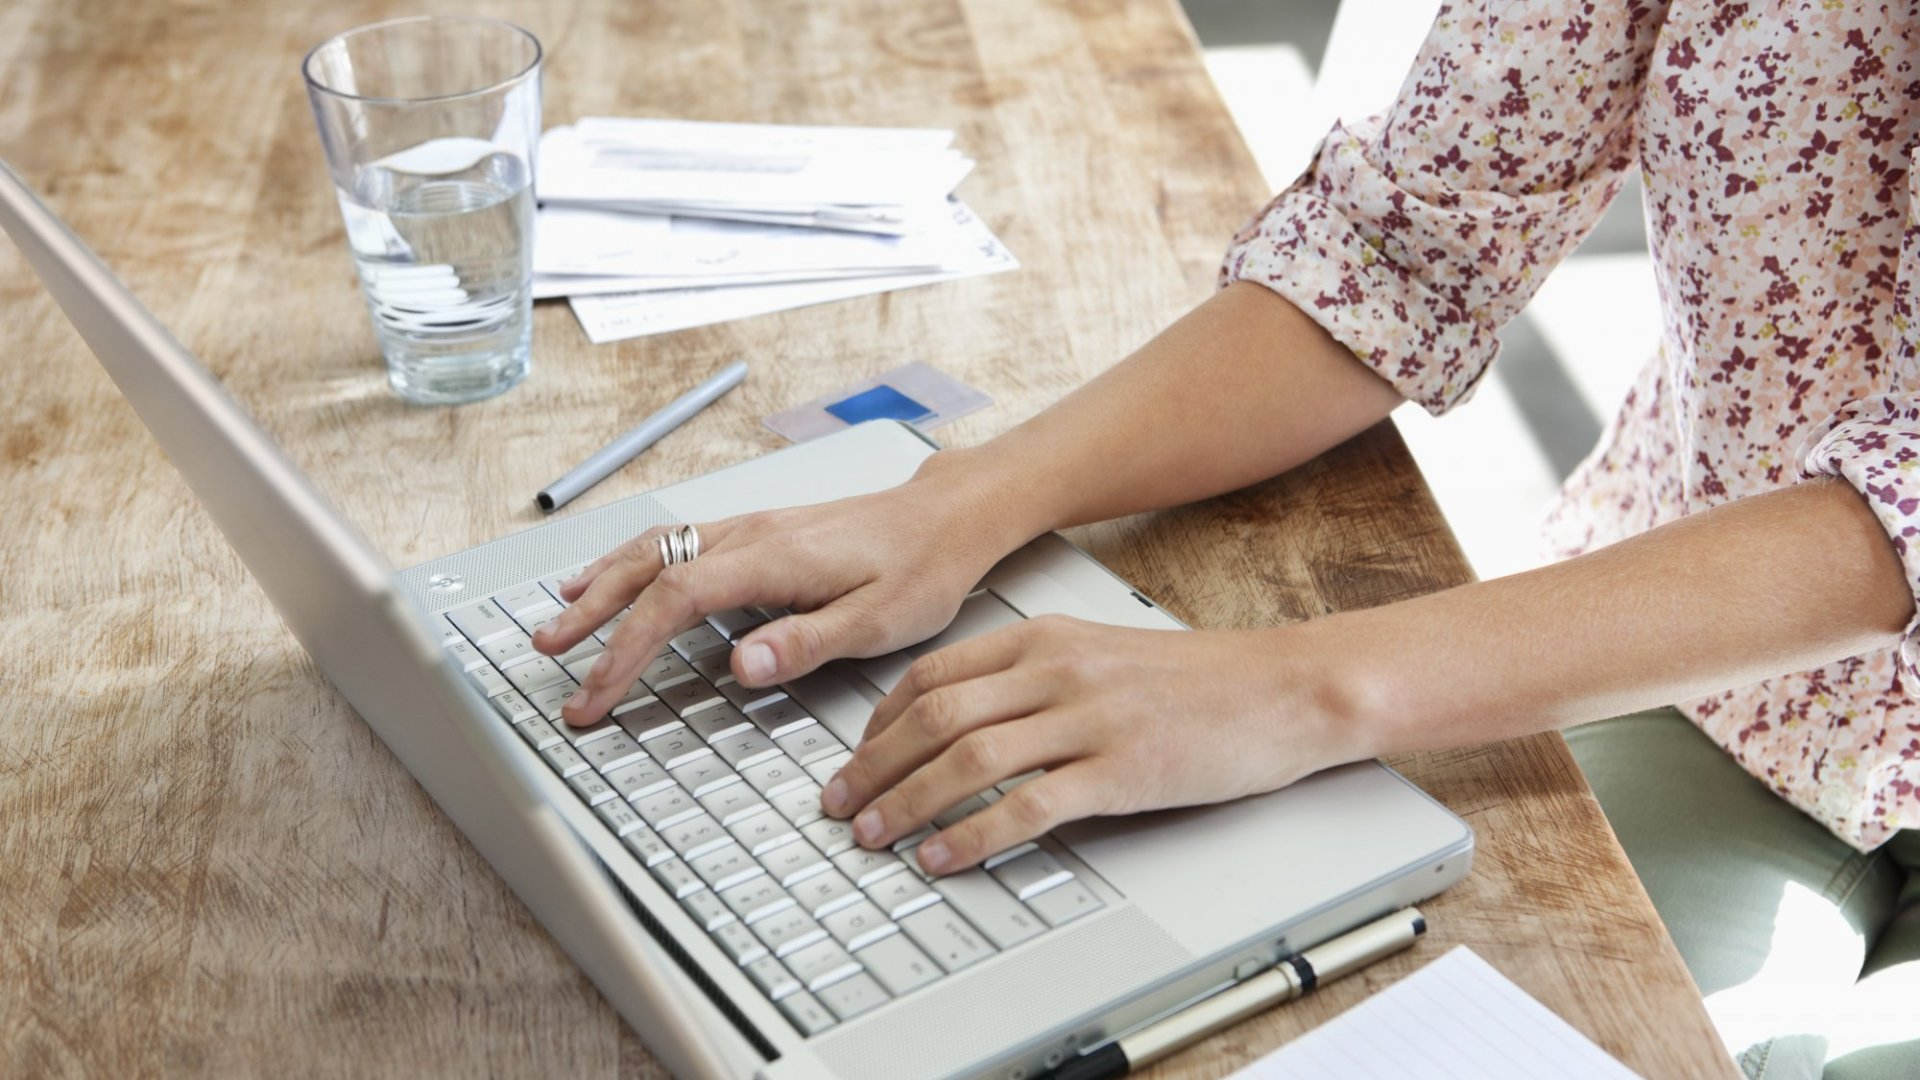 5 Unusual Ways Online Reviews Can Make or Break Your Company